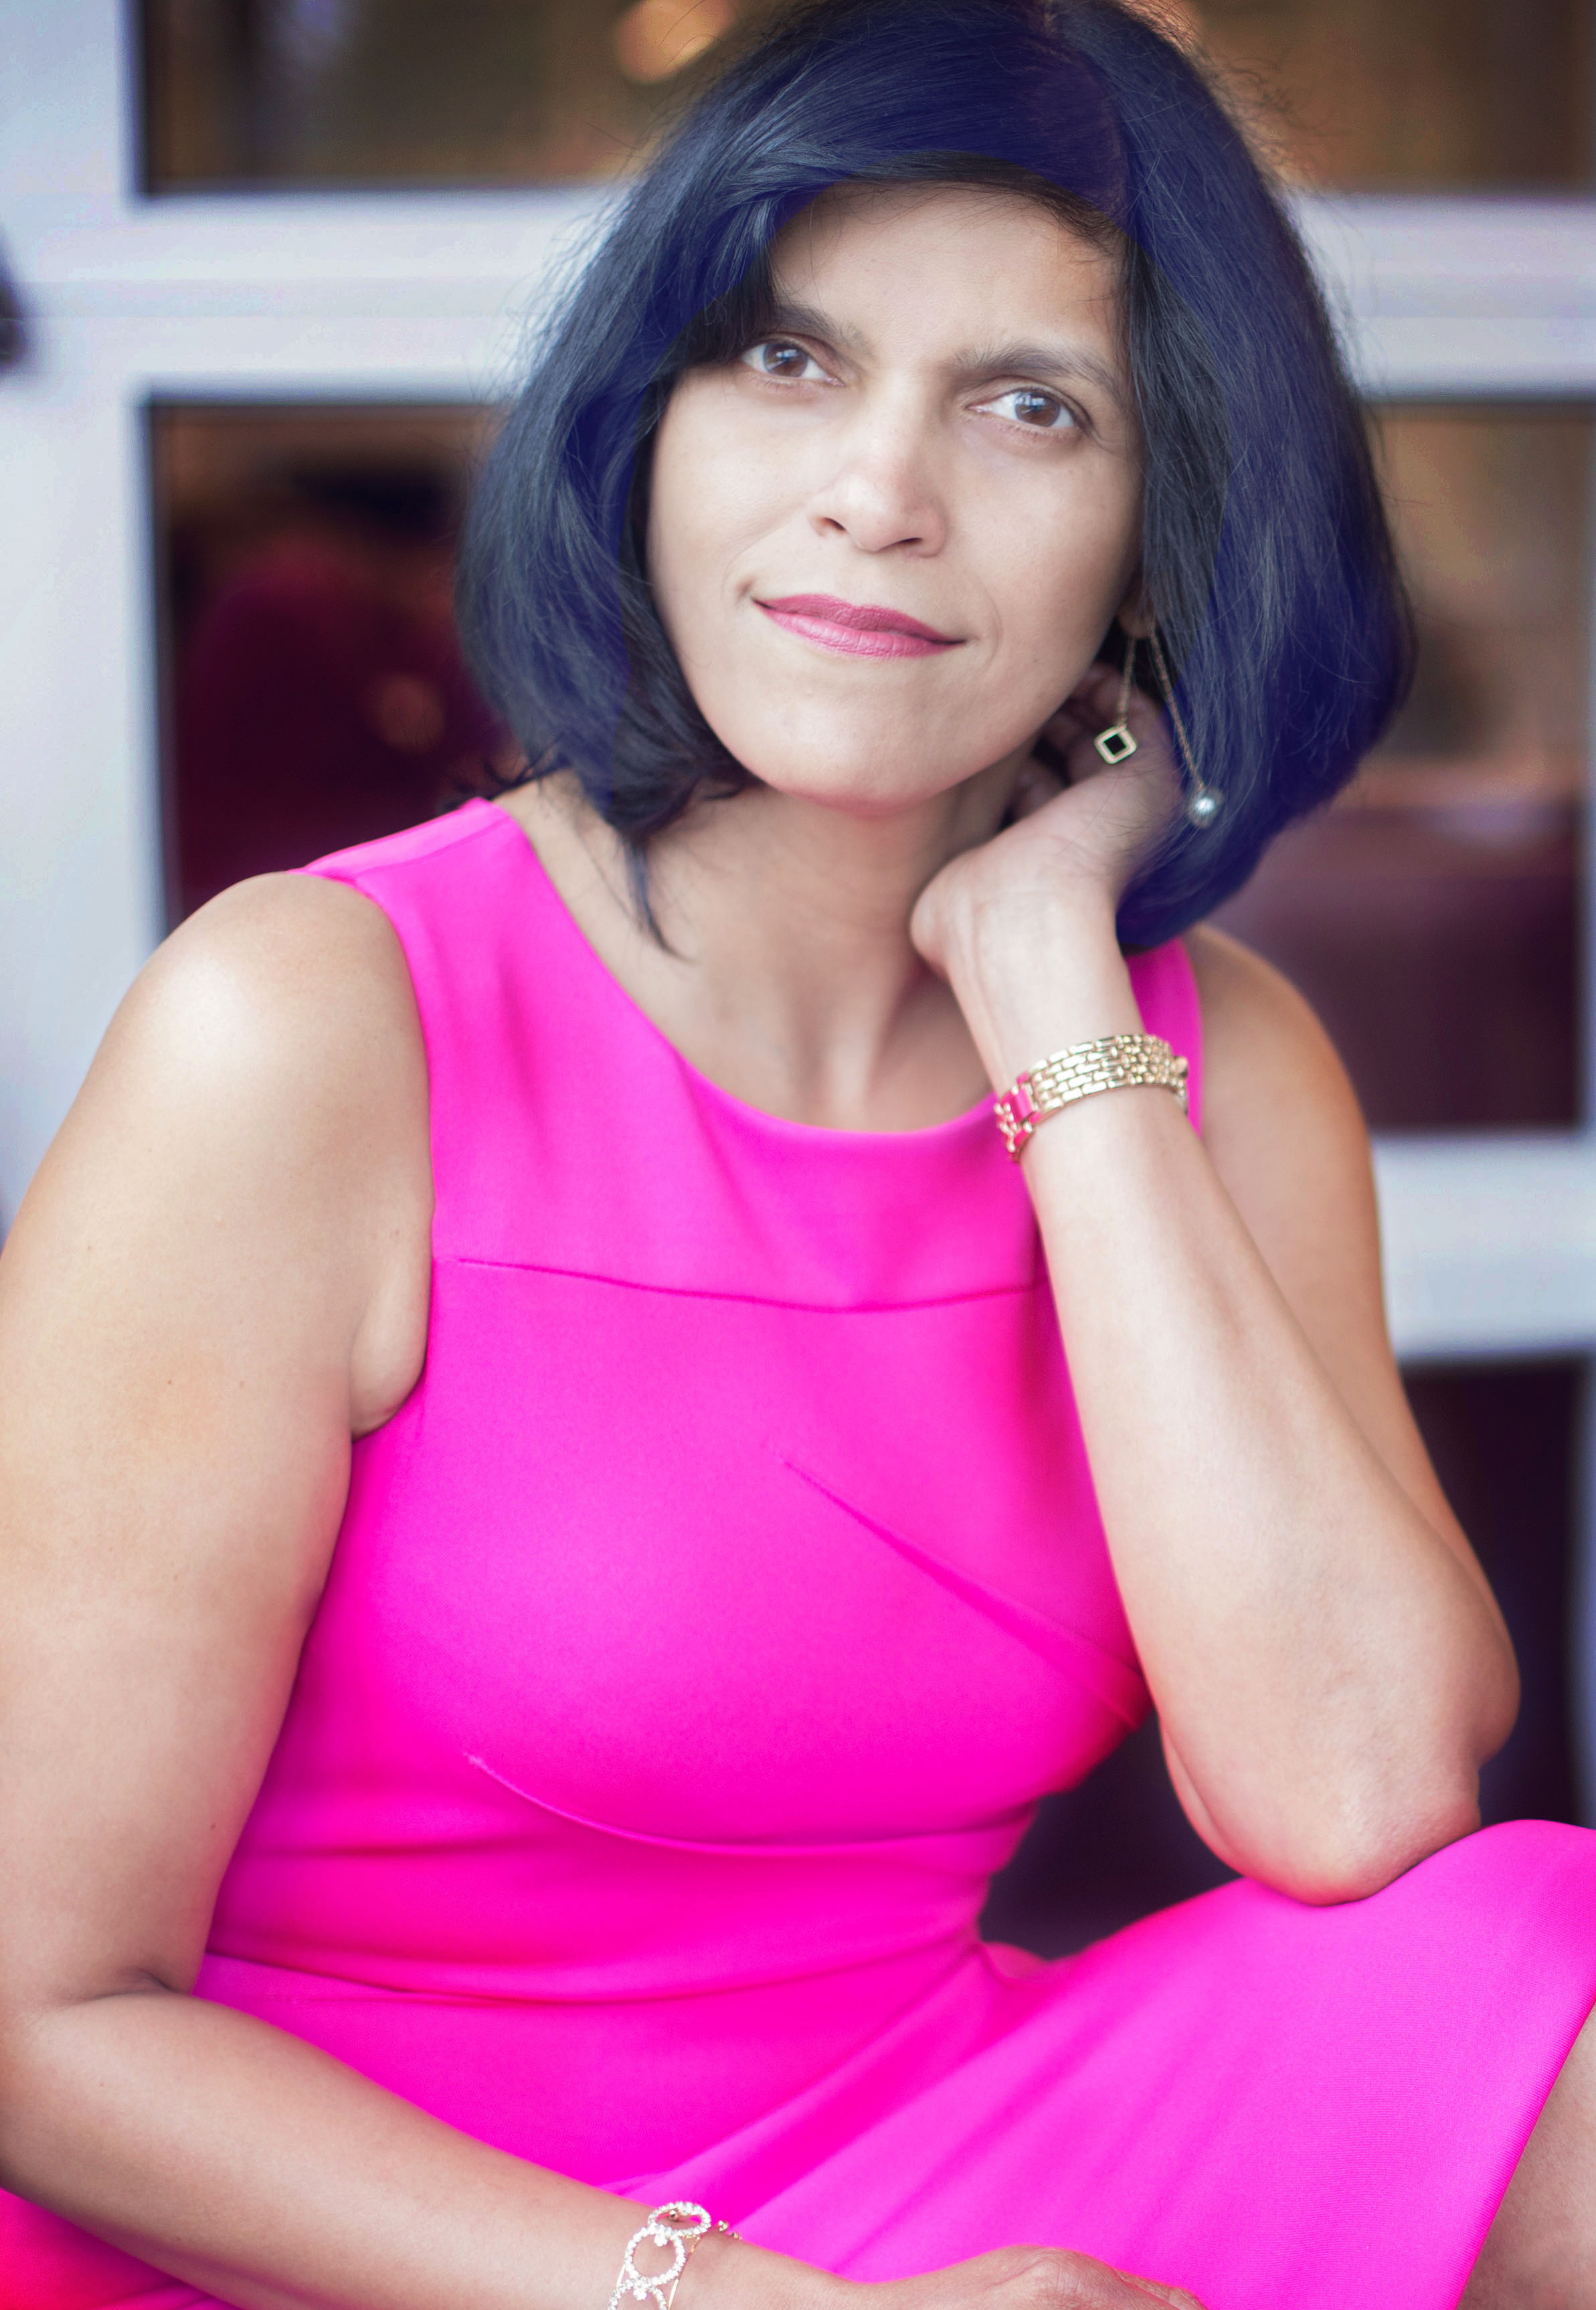 Beena Ammanath (Founder/CEO, Humans For All)